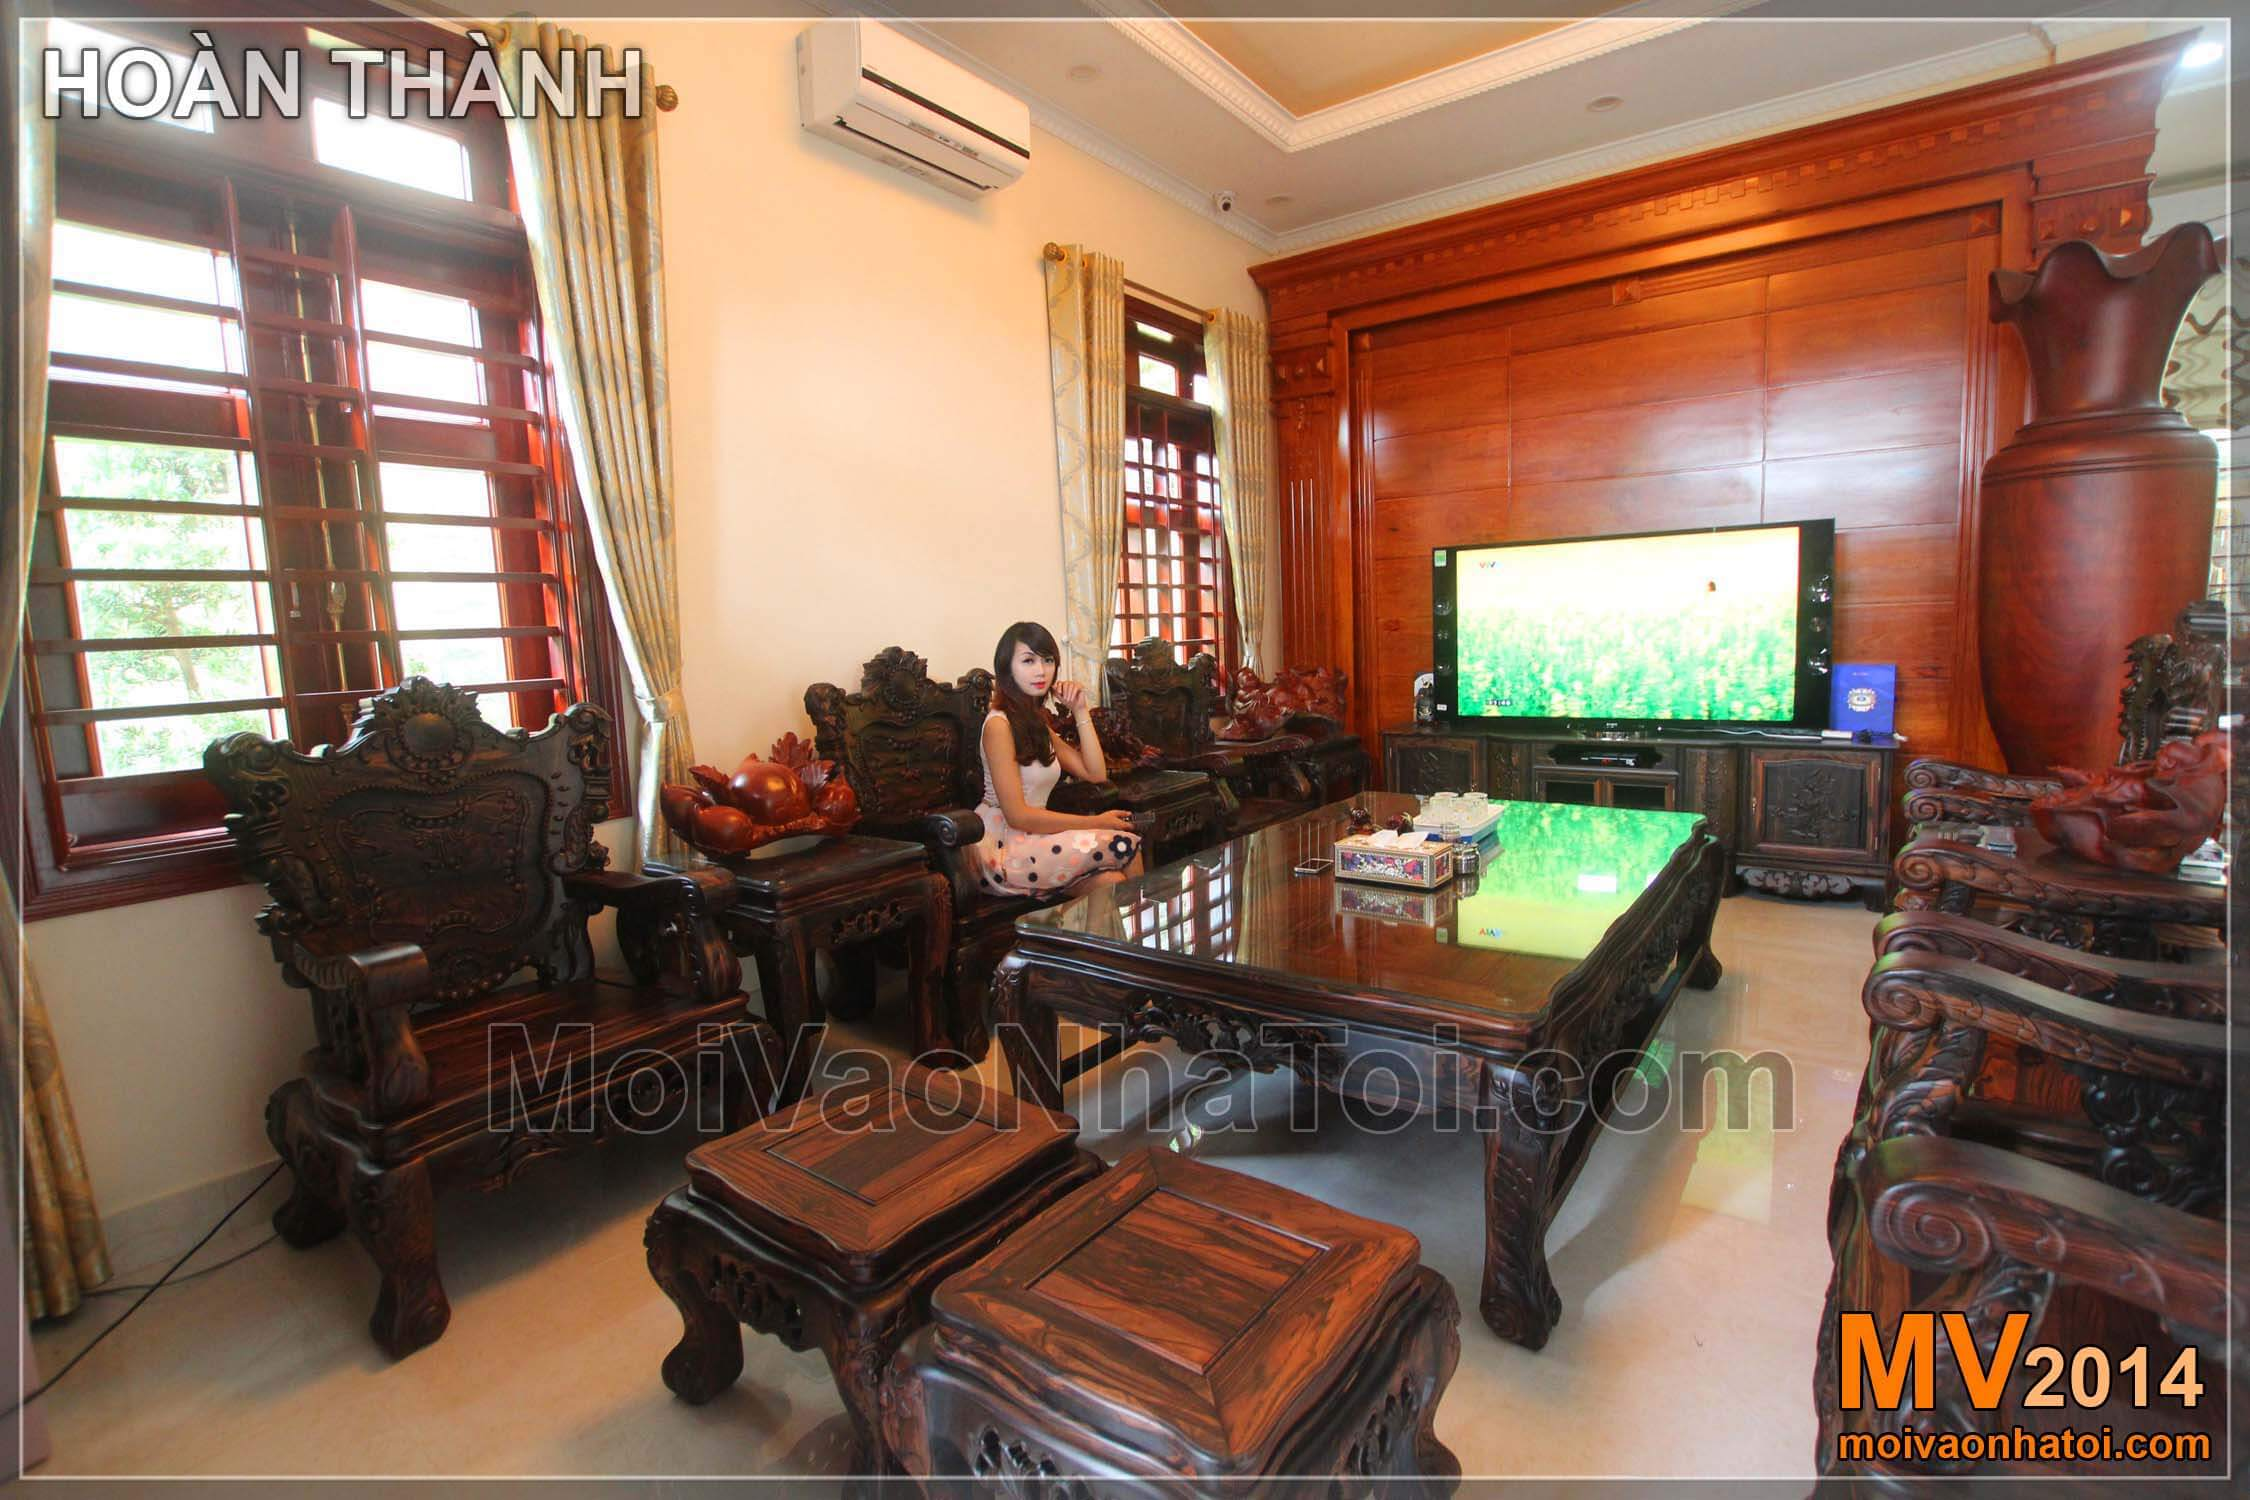 The living room has finished the classic villa design